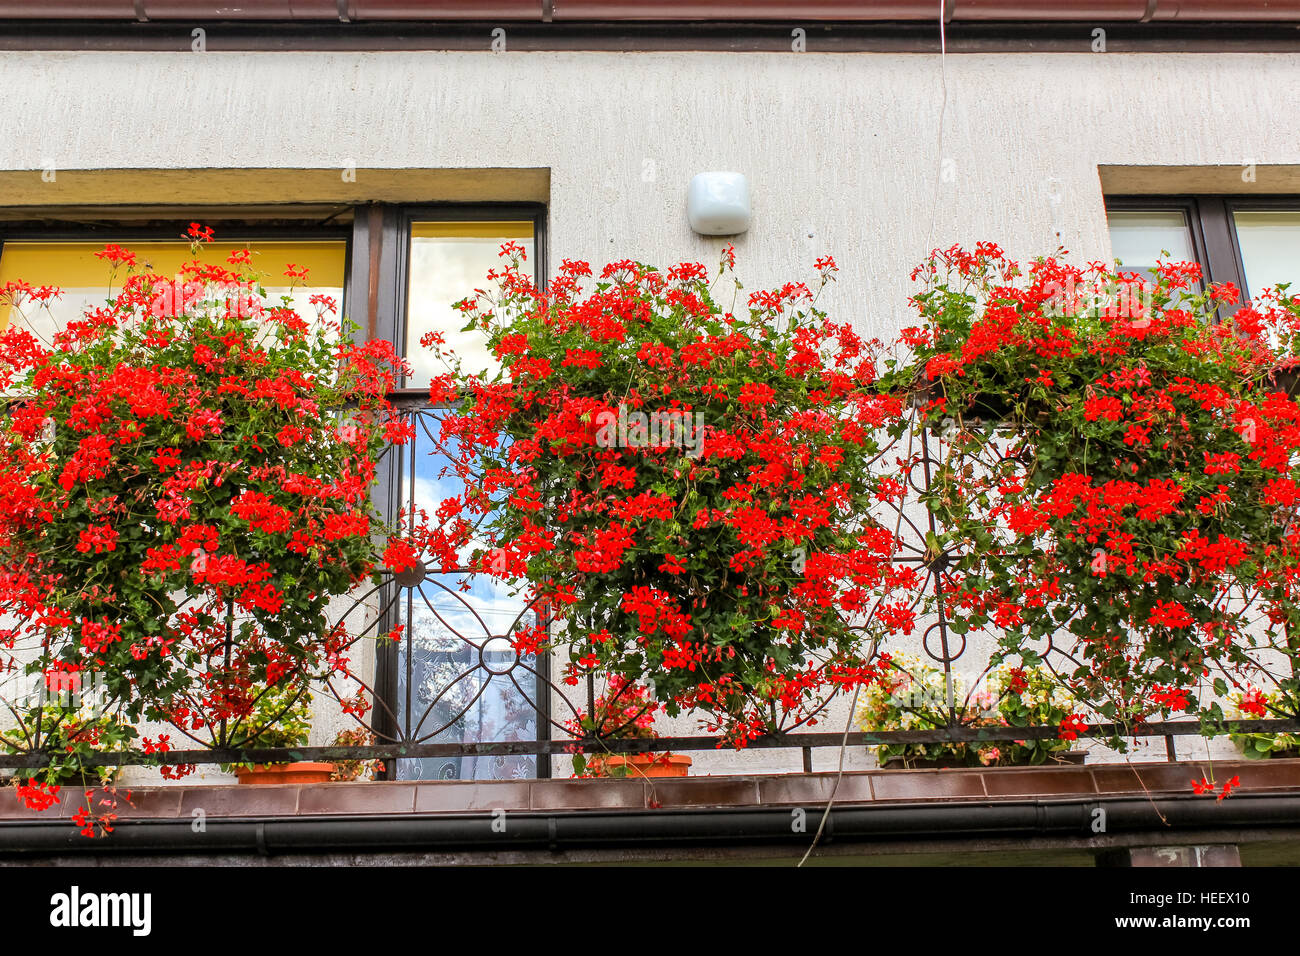 100 balcony flowers shop window boxes planter boxes for Balcony flowers